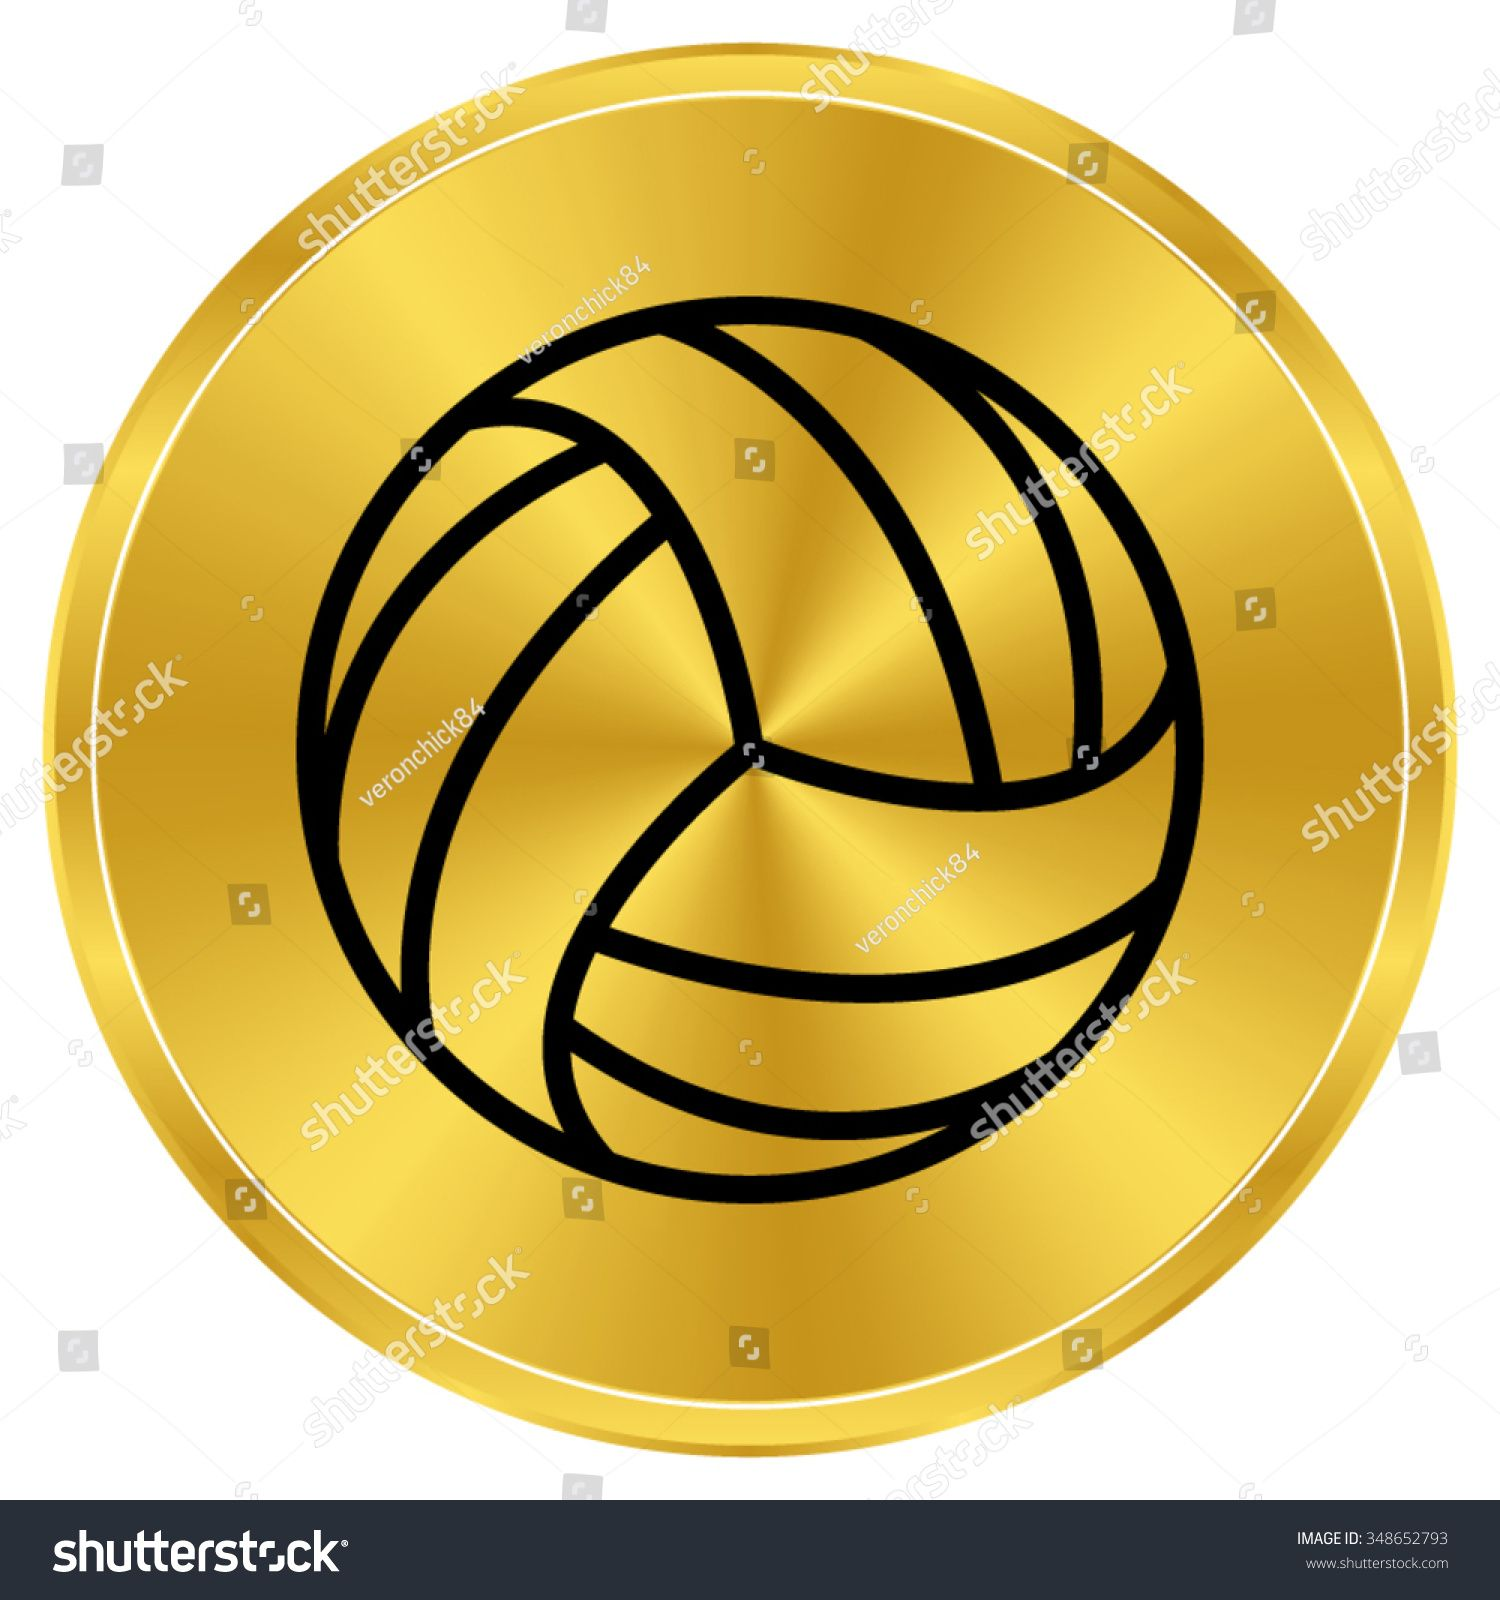 Volleyball Ball Gold Vector Icon Ad Ad Ball Volleyball Gold Icon In 2020 Photo Editing Flyer Mockup Stock Photos